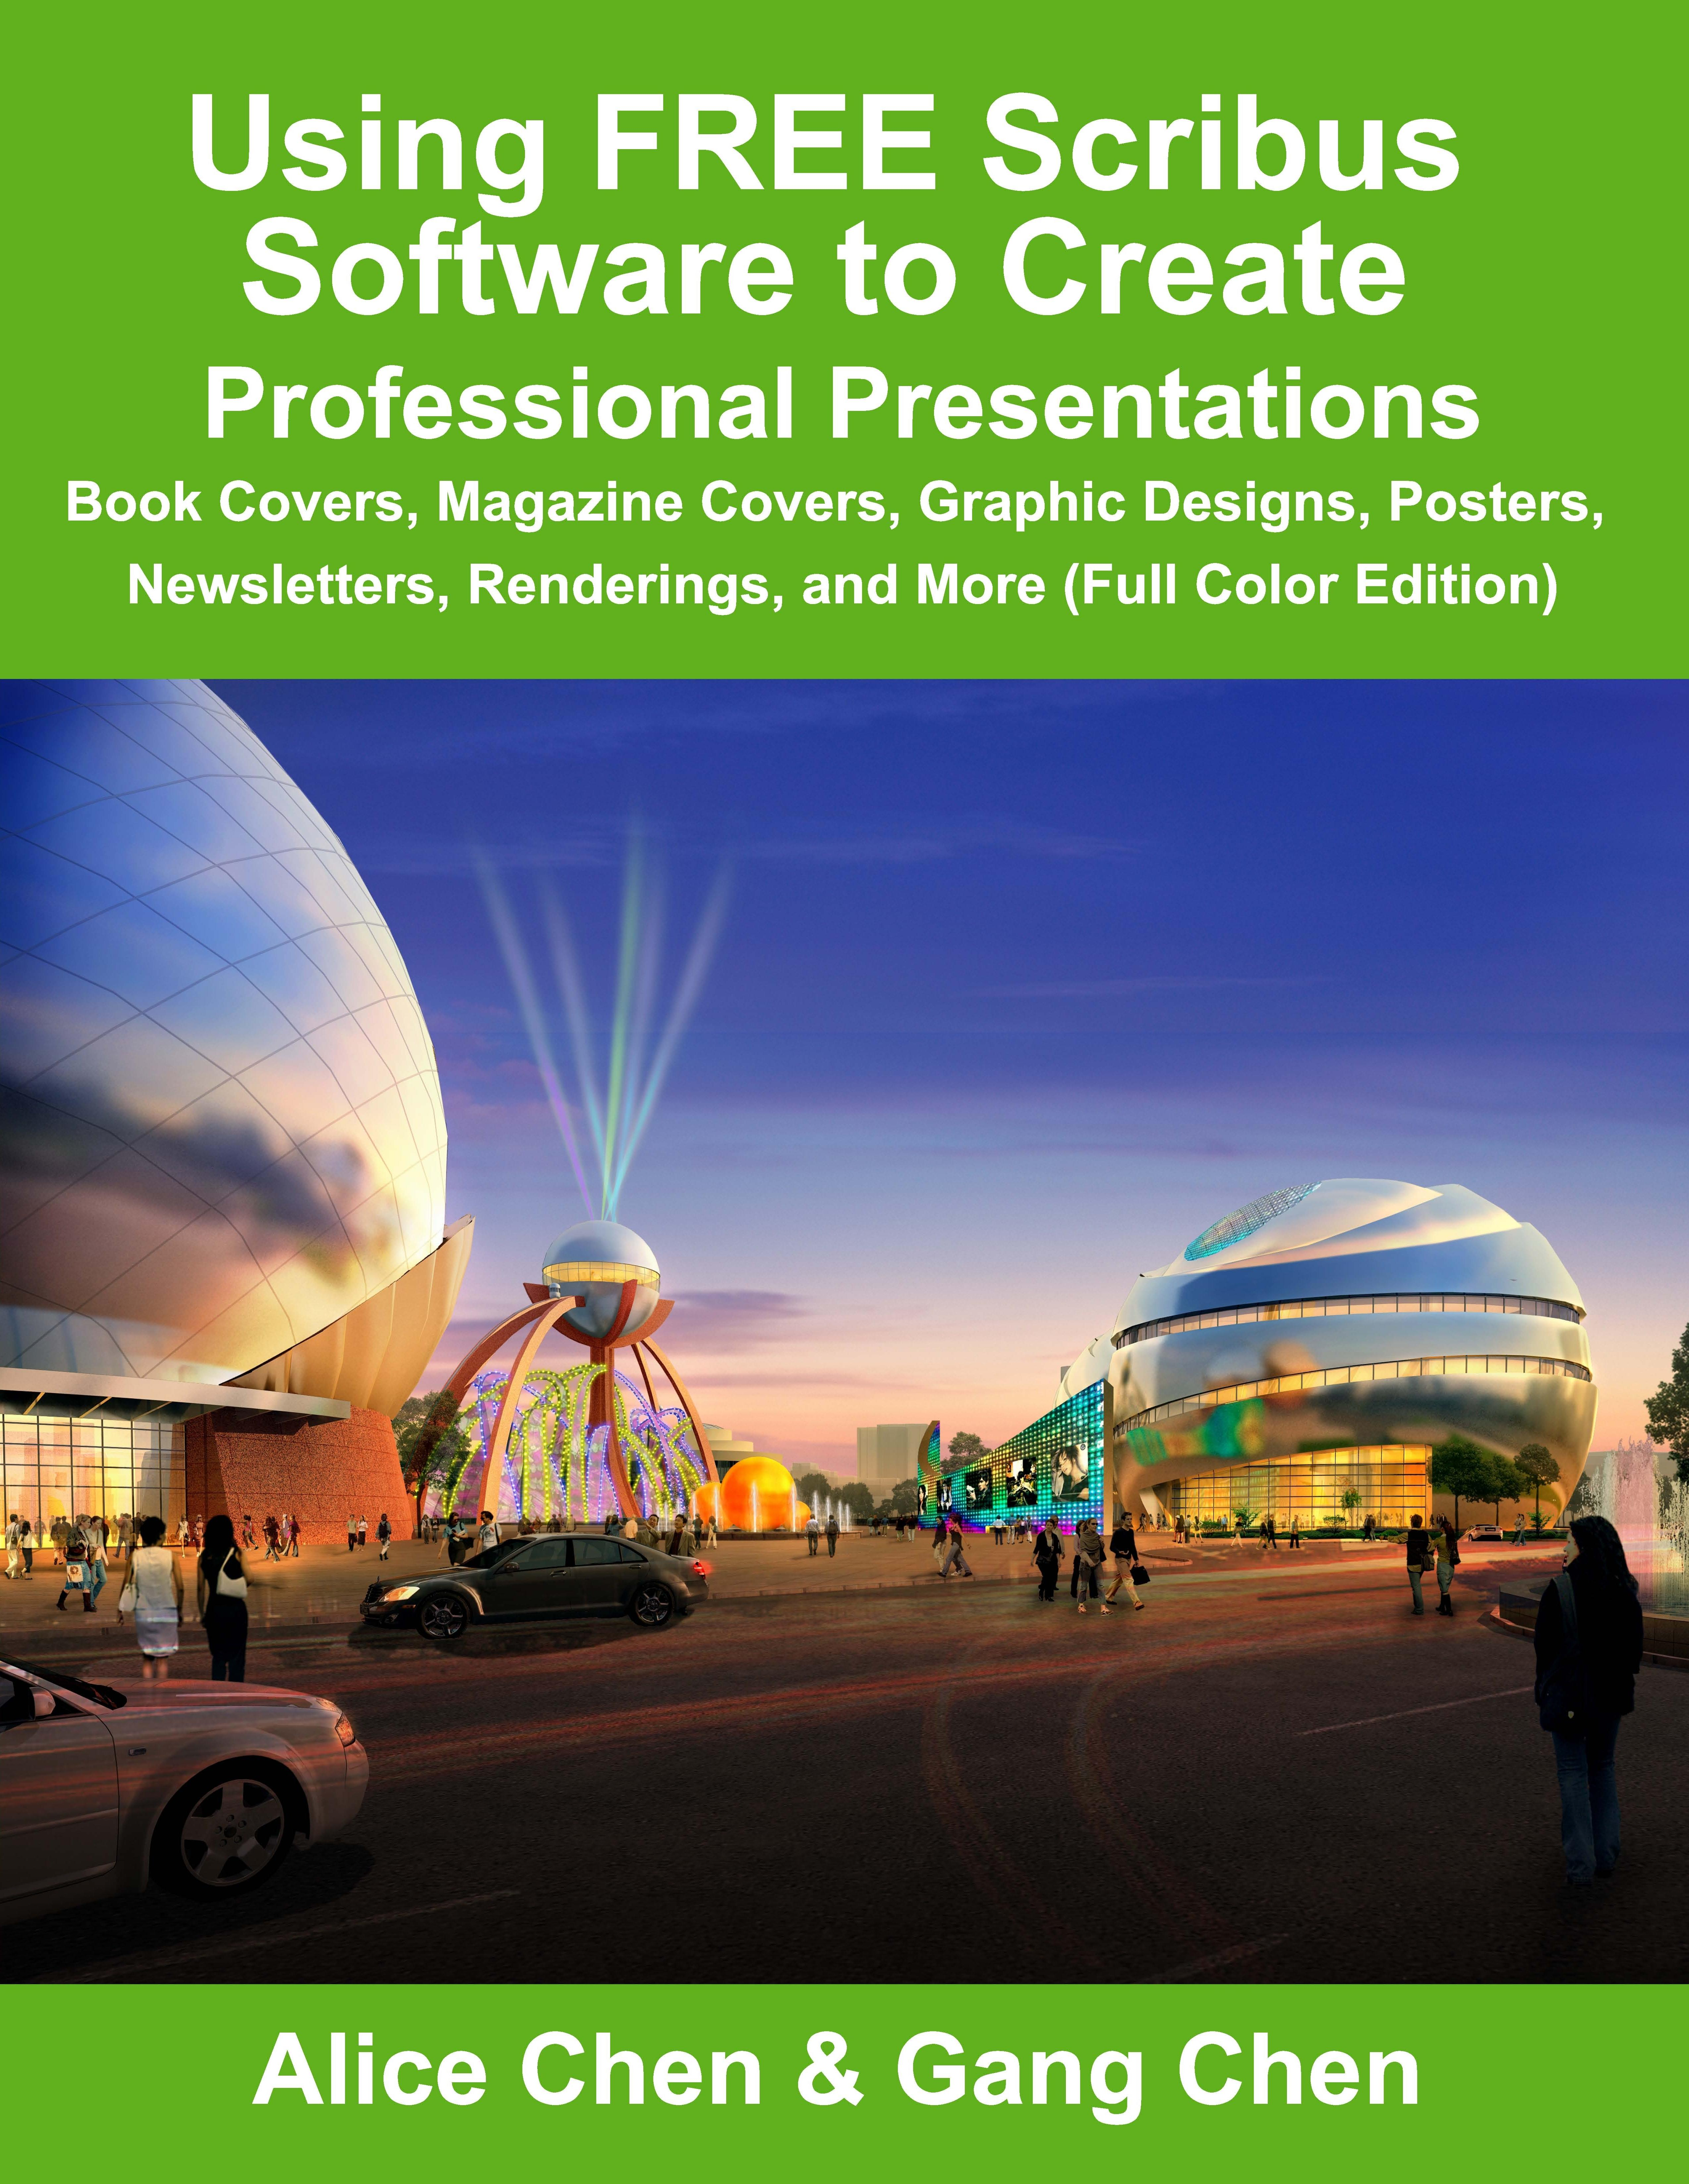 Using FREE Scribus Software to Create Professional Presentations: Book Covers, Magazine Covers, Graphic Designs, Posters, Newsletters, Renderings, and